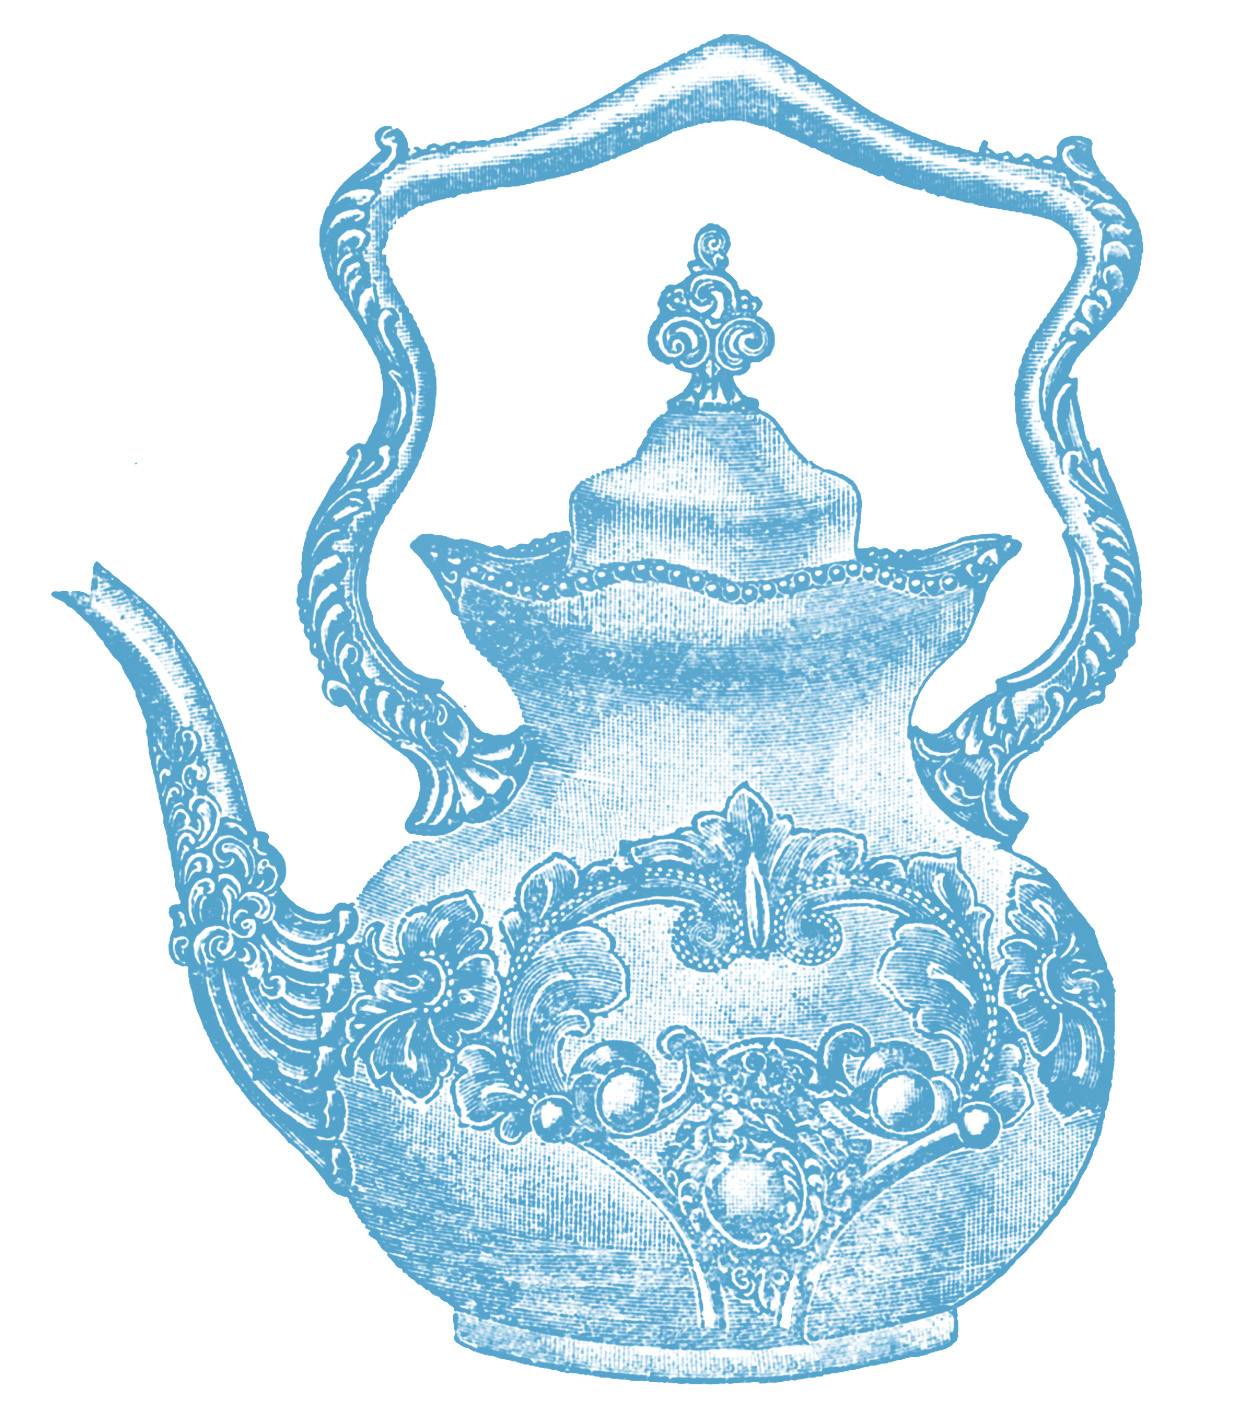 Teacups illustrations and clipart 7745  Can Stock Photo